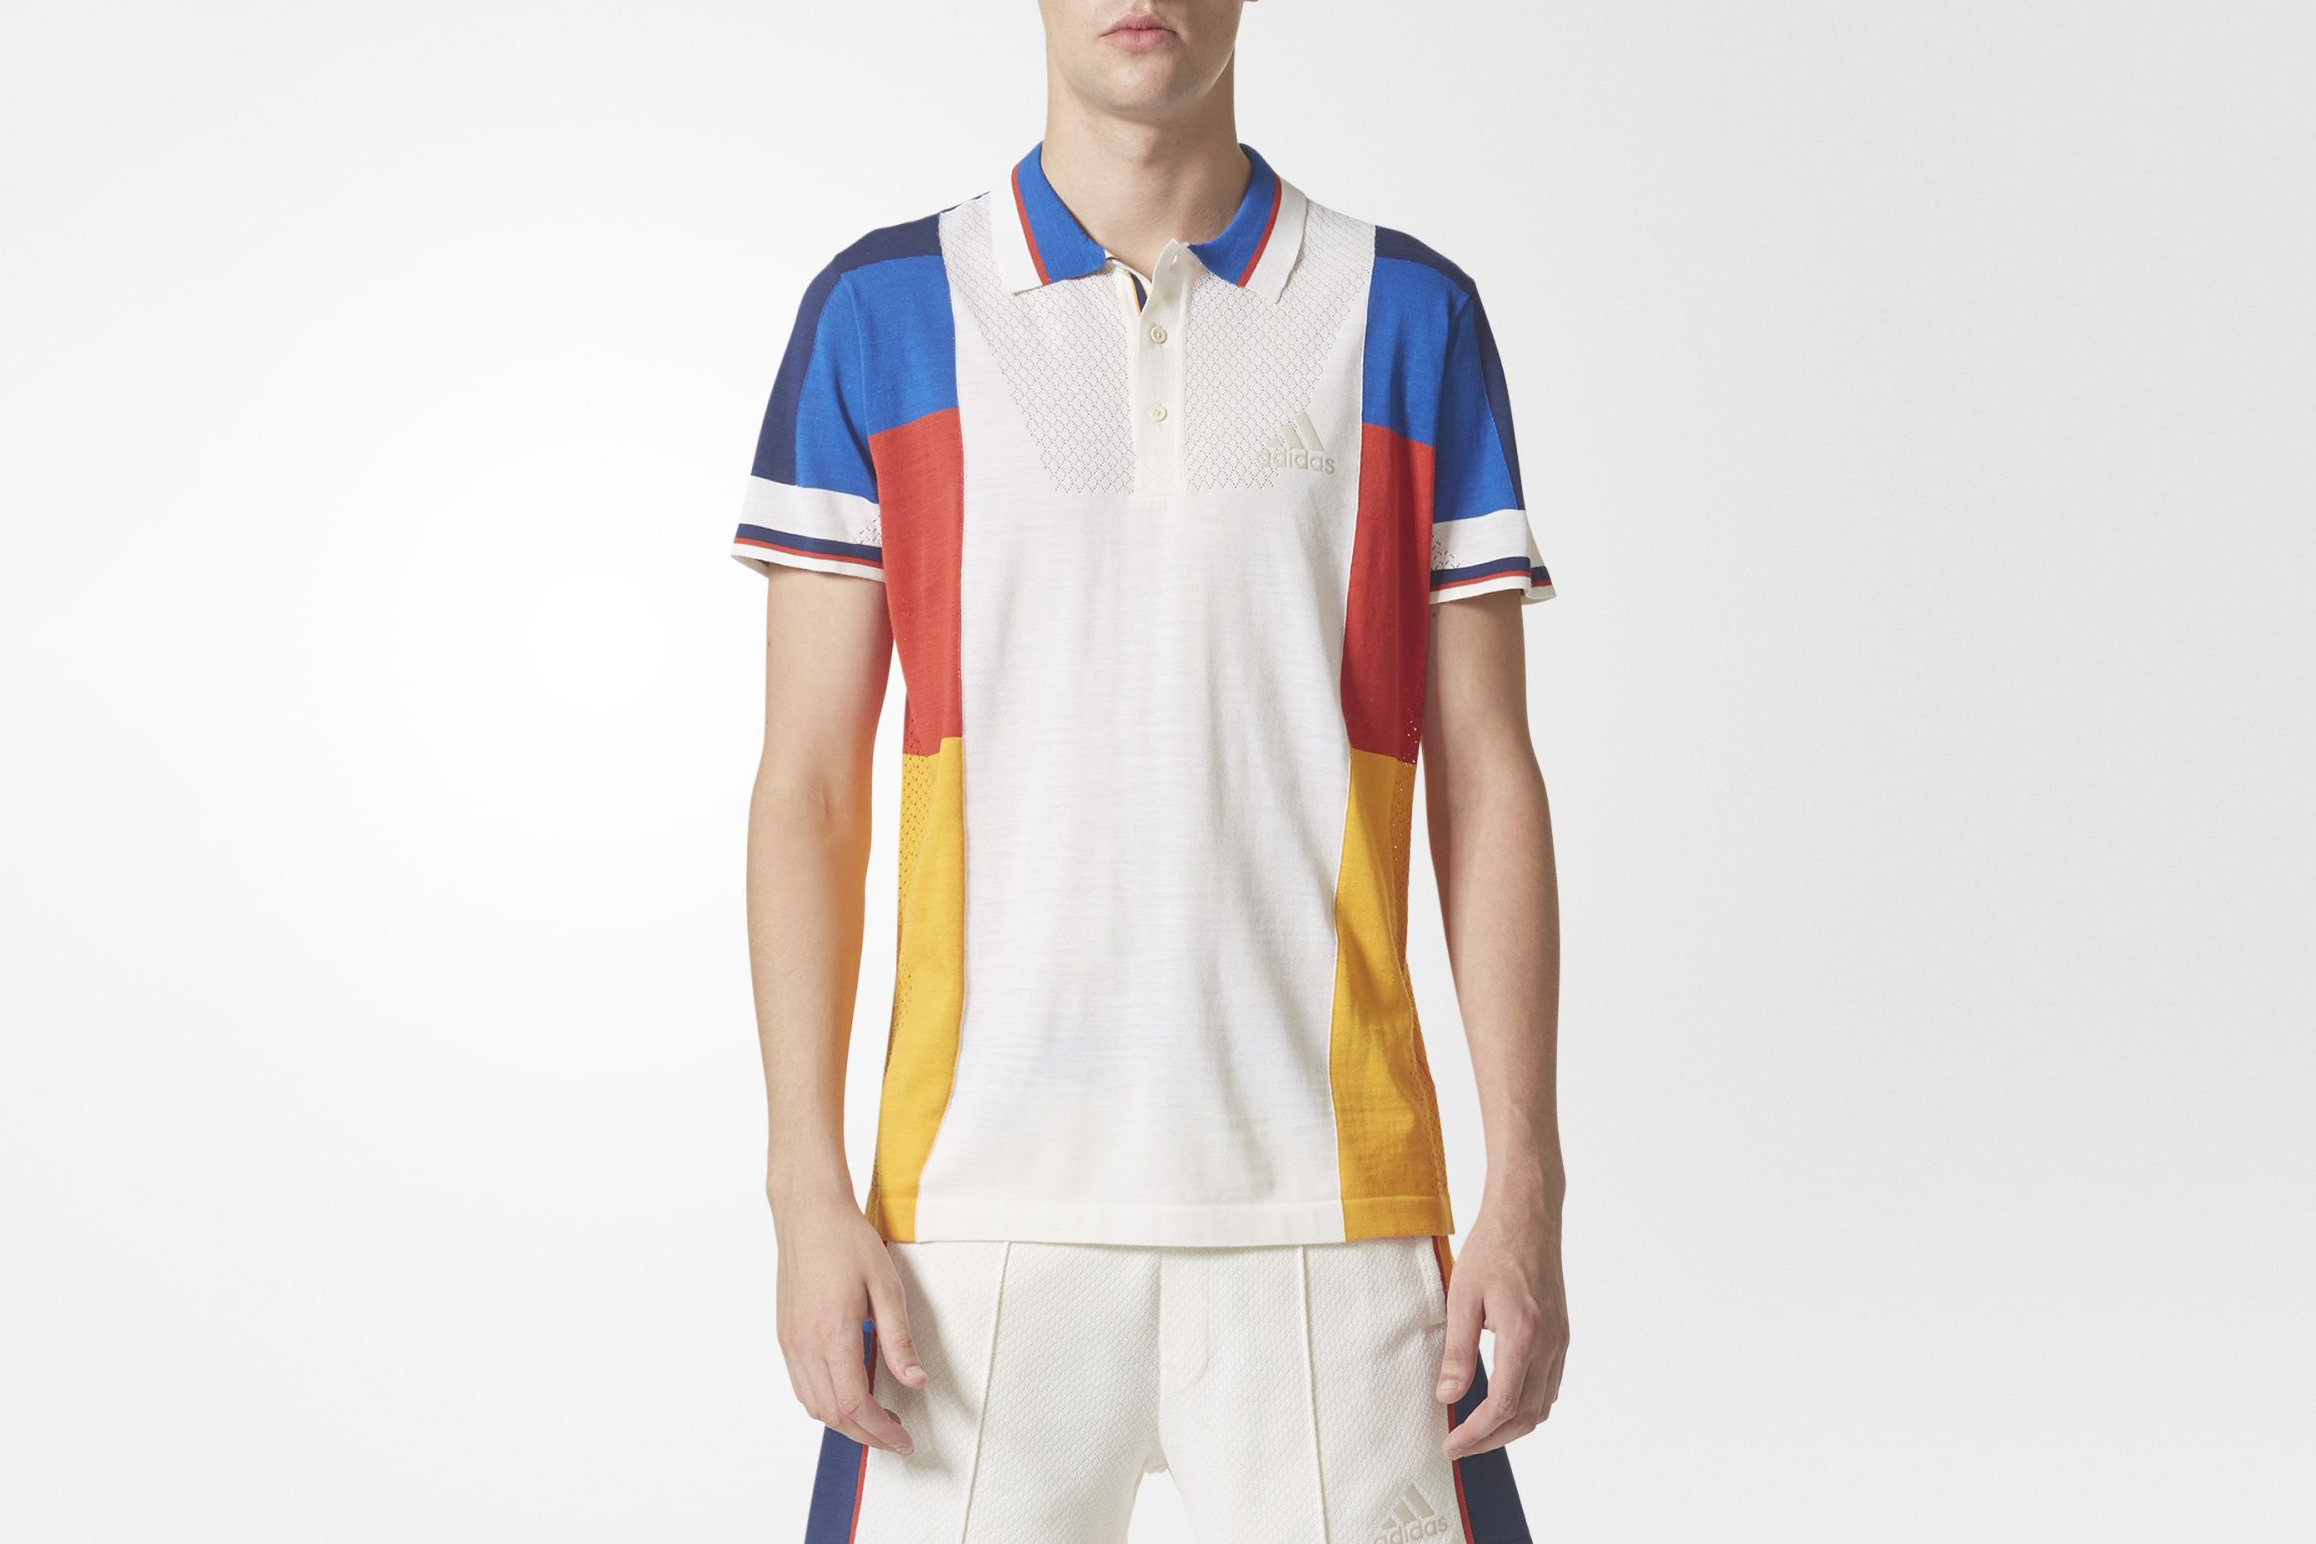 Adidas x pharrell williams ny colorblock polo shirt what for Polo color block shirt